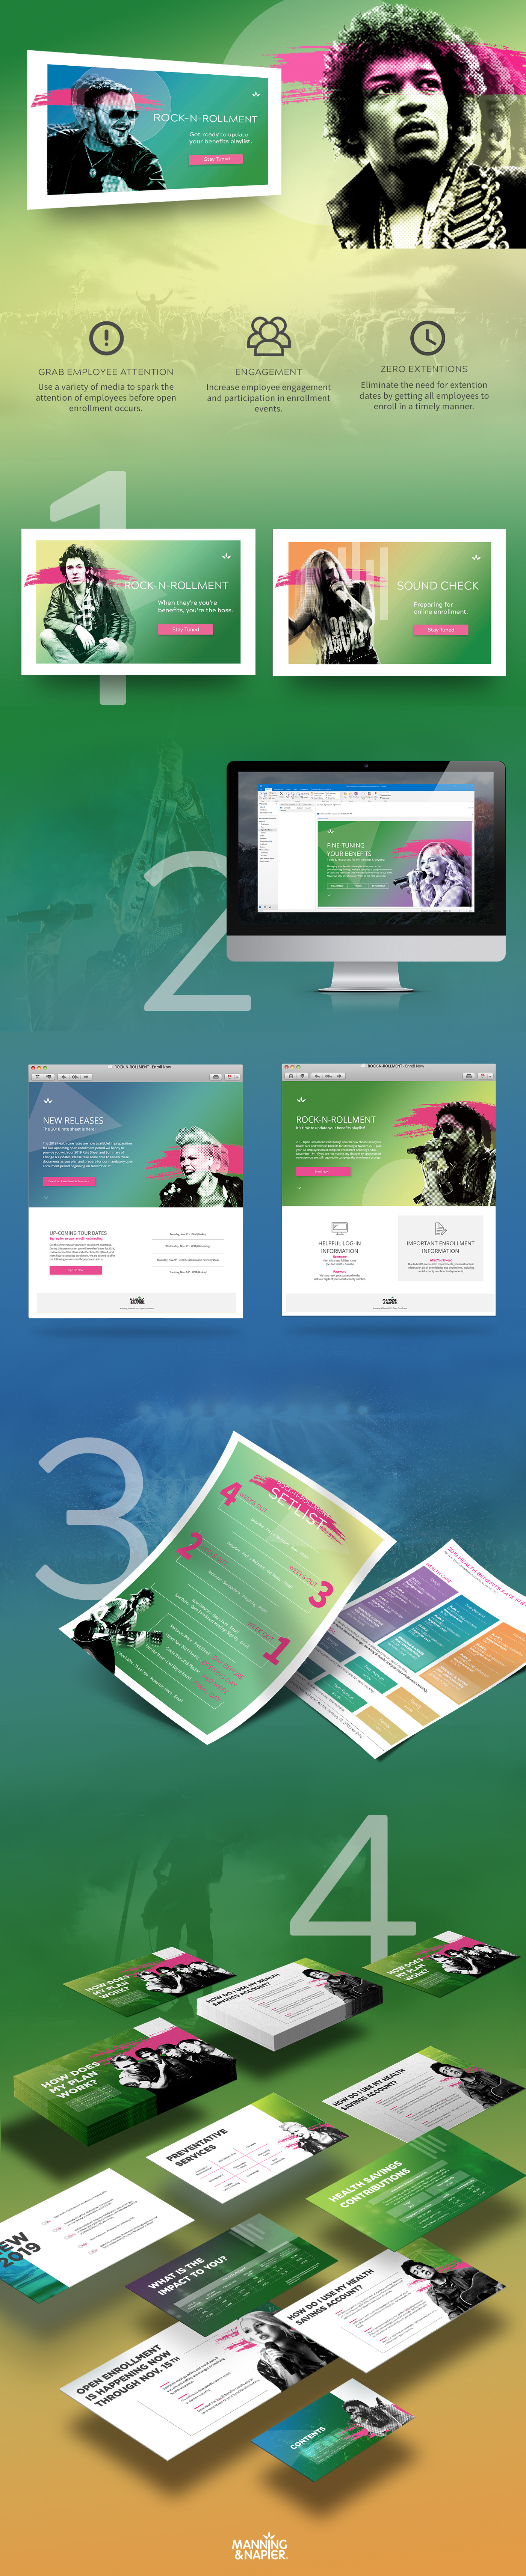 re-brand campaign in-house Enrollment rock Rock-n-Roll Human Resources